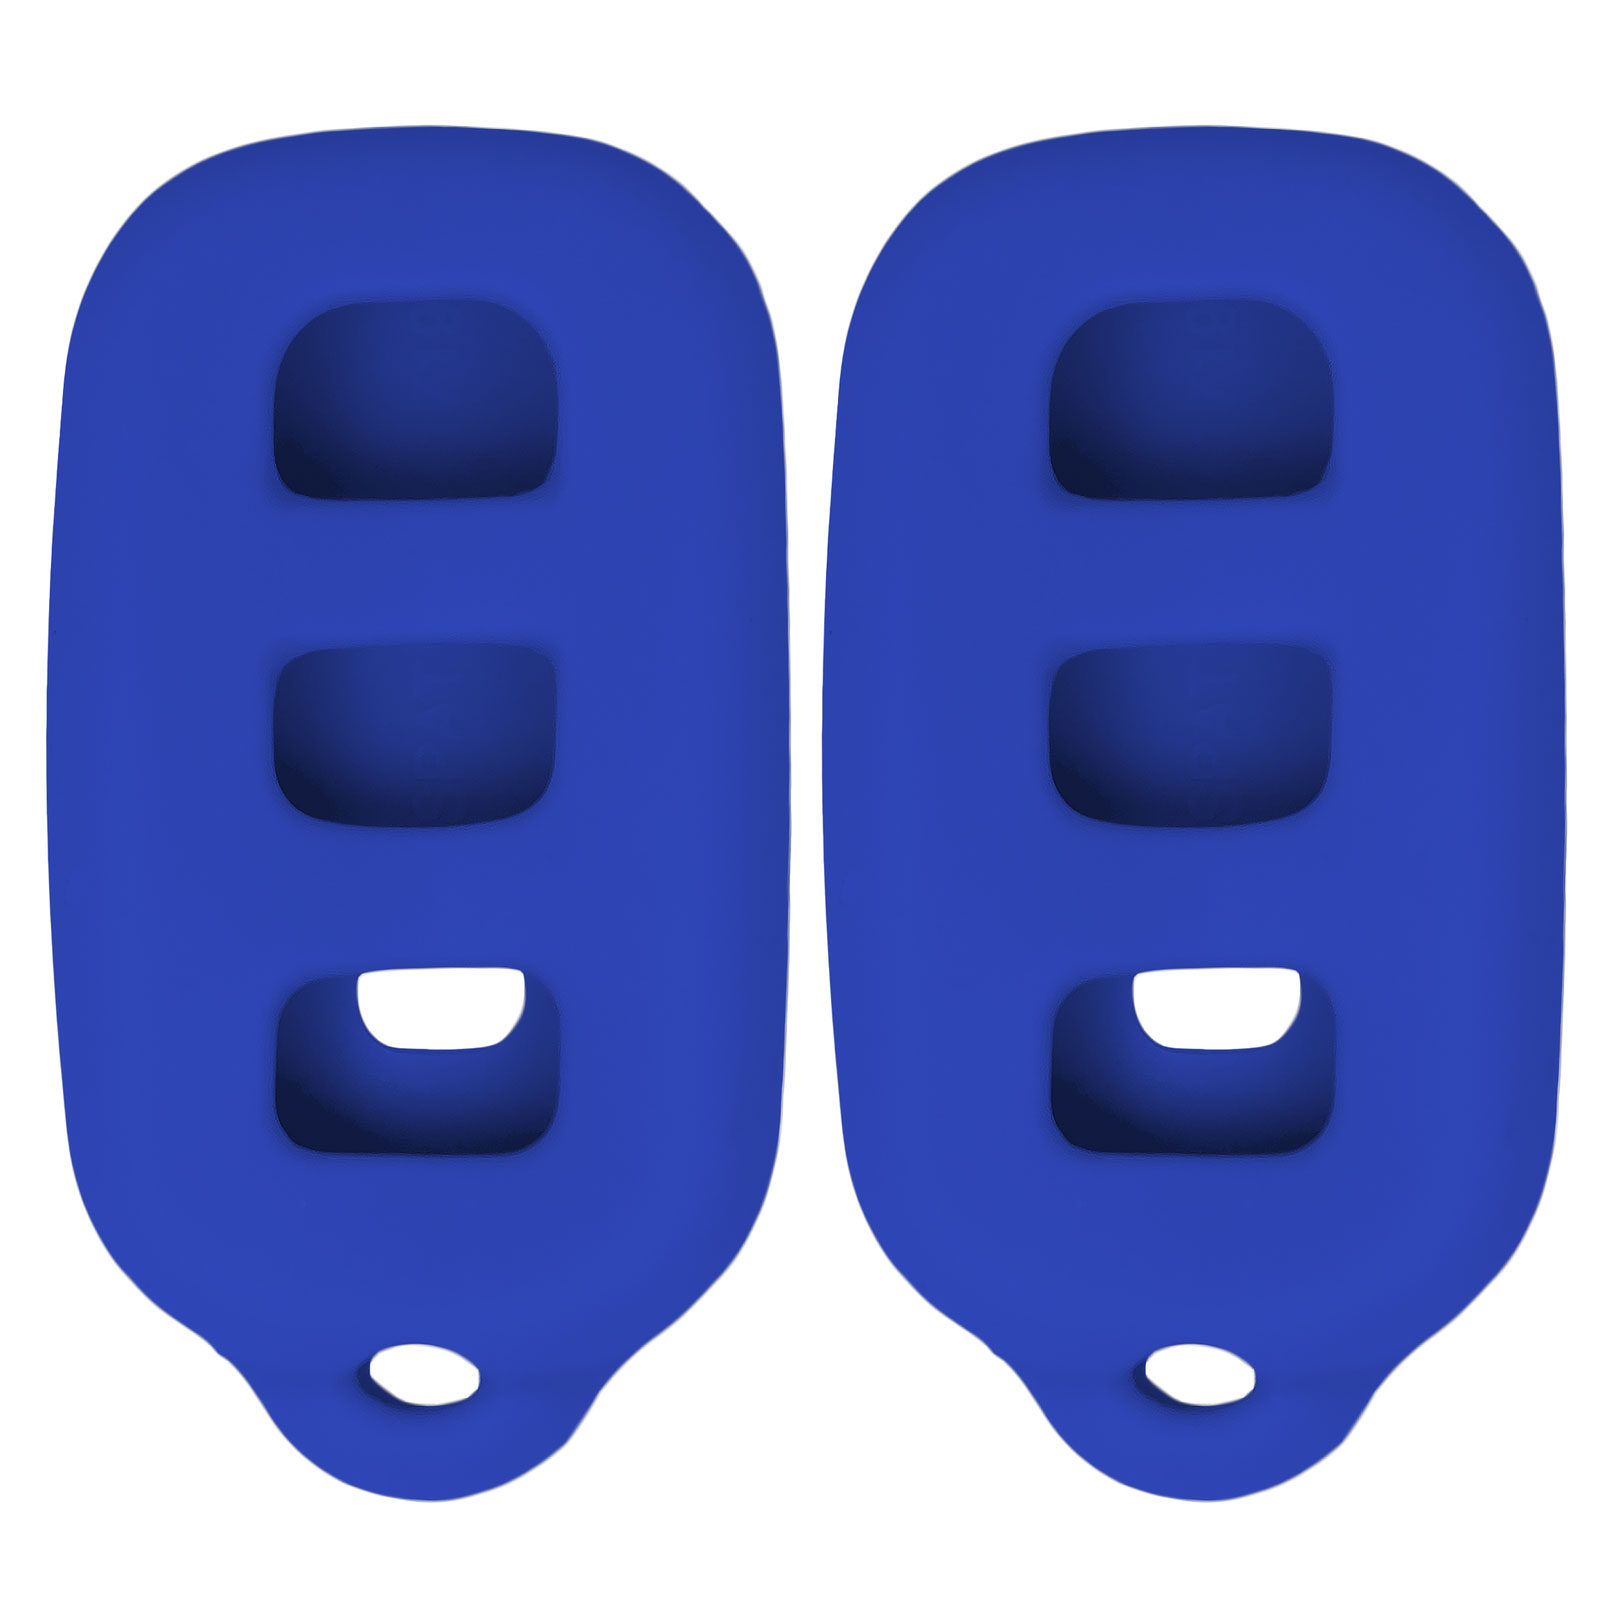 Keyless2Go New Silicone Cover Protective Cases for Remote Key Fobs with FCC GQ43VT14T HYQ12BBX HYQ12BAN (2 Pack)